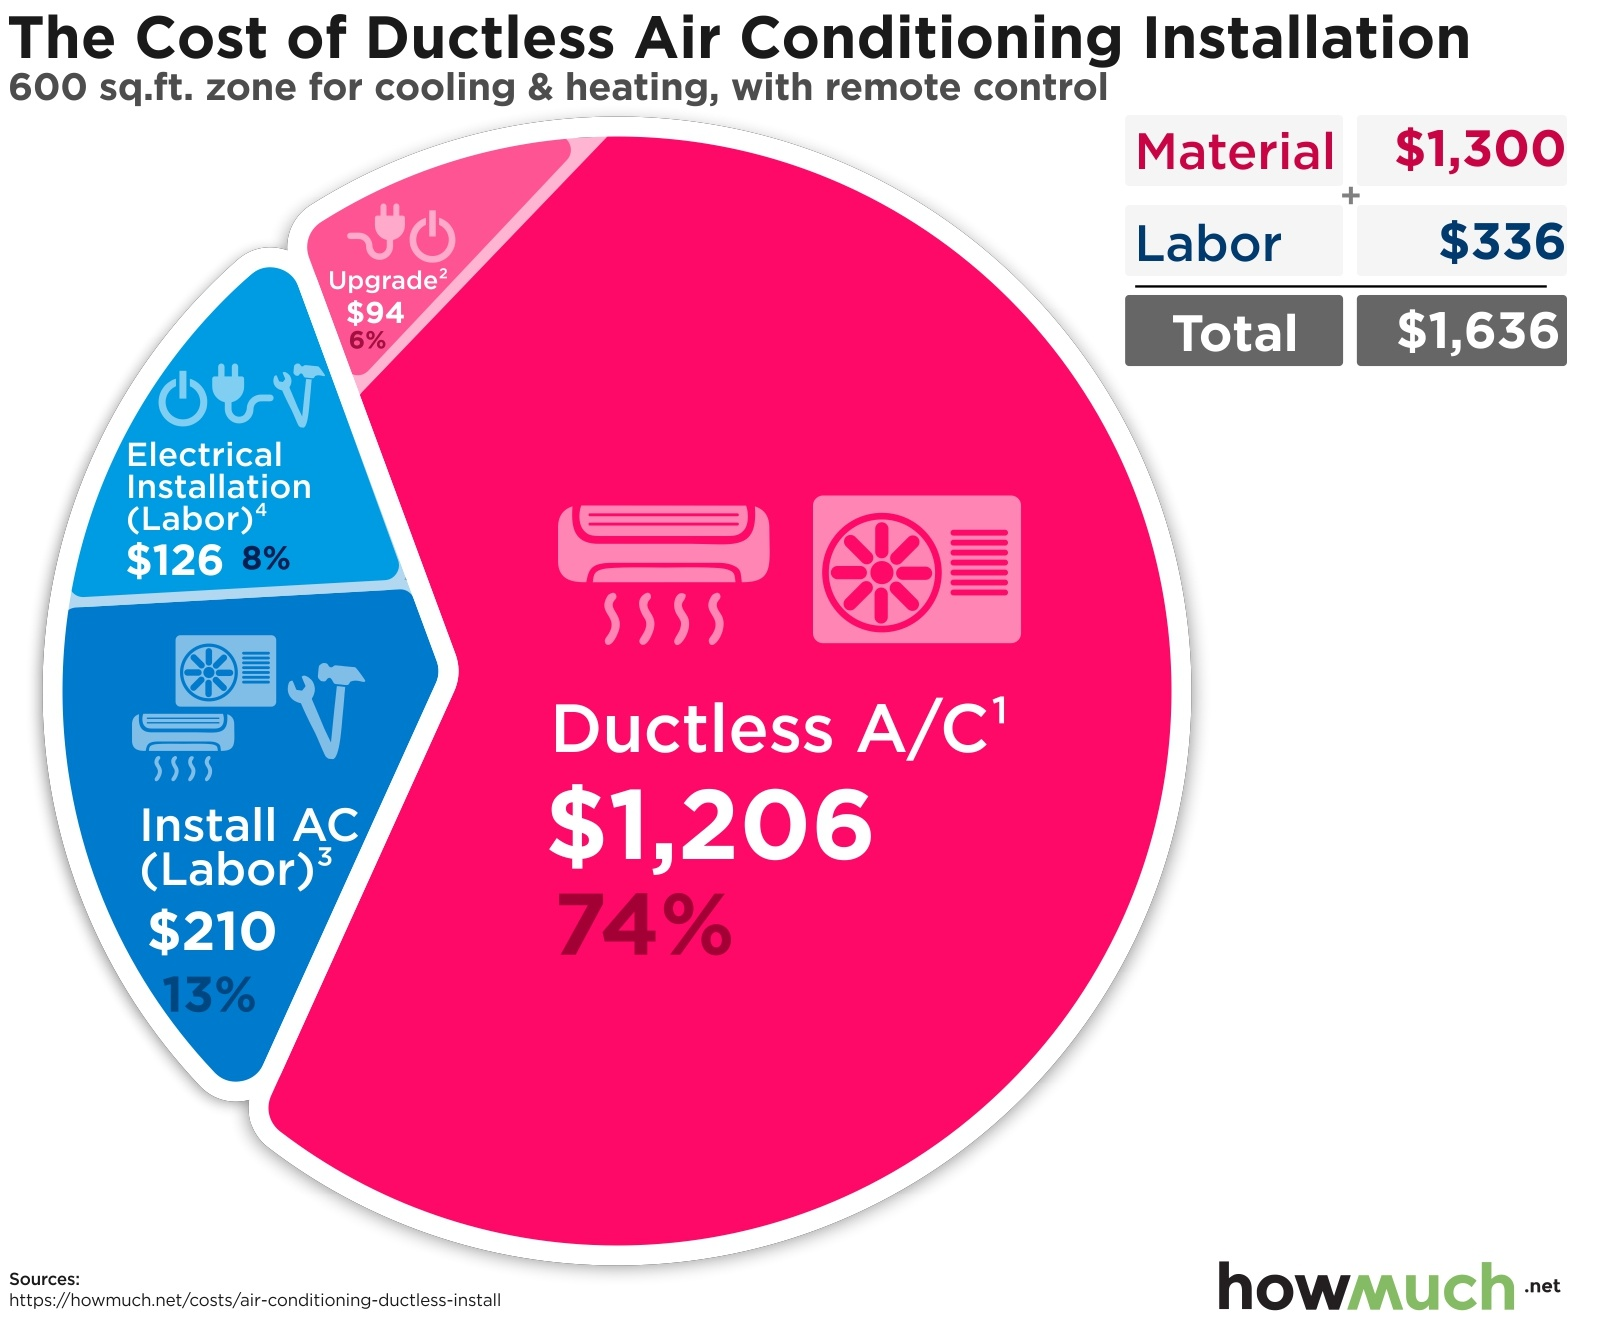 The Cost of Ductless Air Conditioning Installation